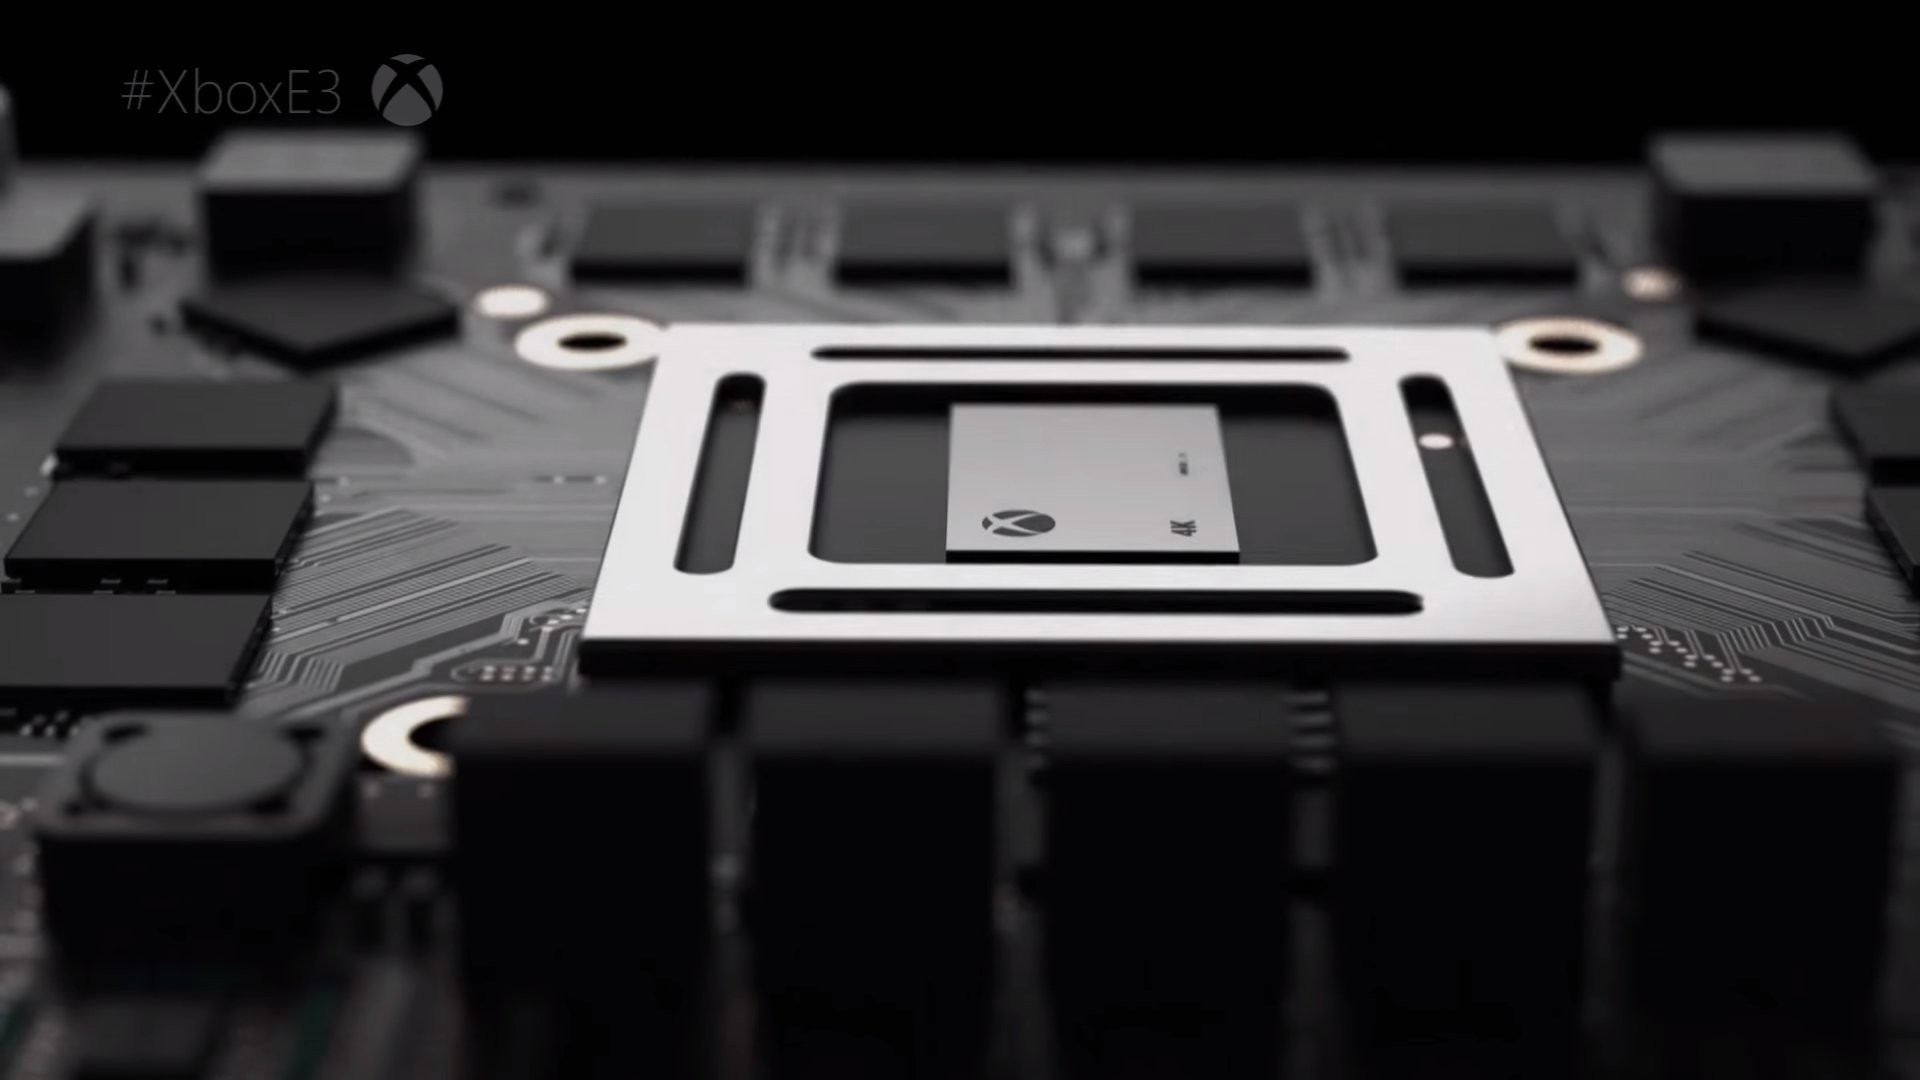 Xbox's Project Scorpio Just Got a Pre-order Page